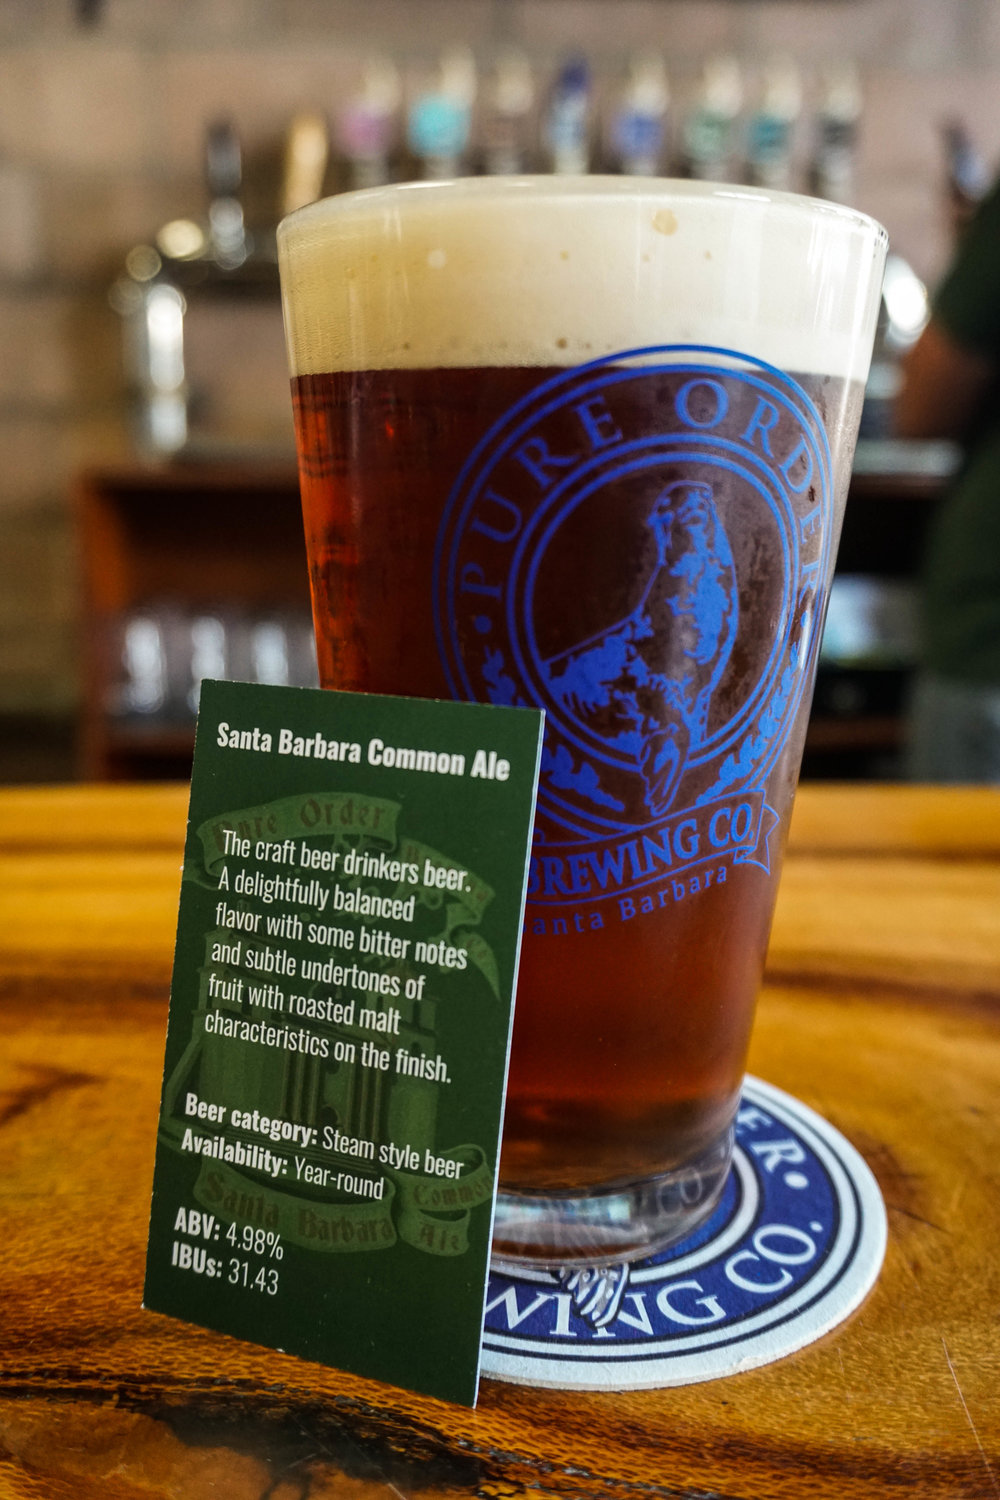 Santa Barbara Common Ale